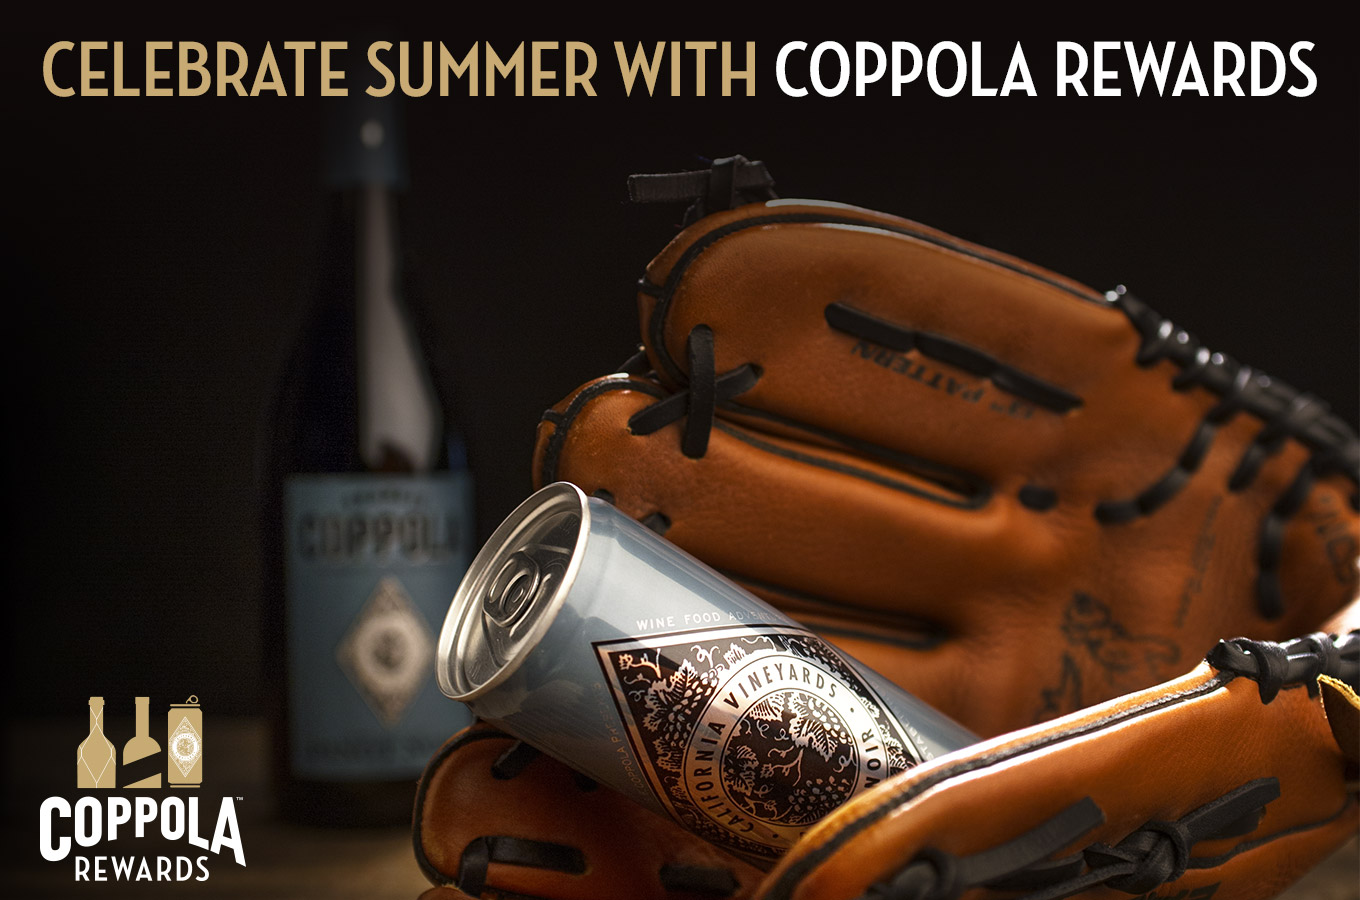 Celebrate Summer With Coppola Rewards